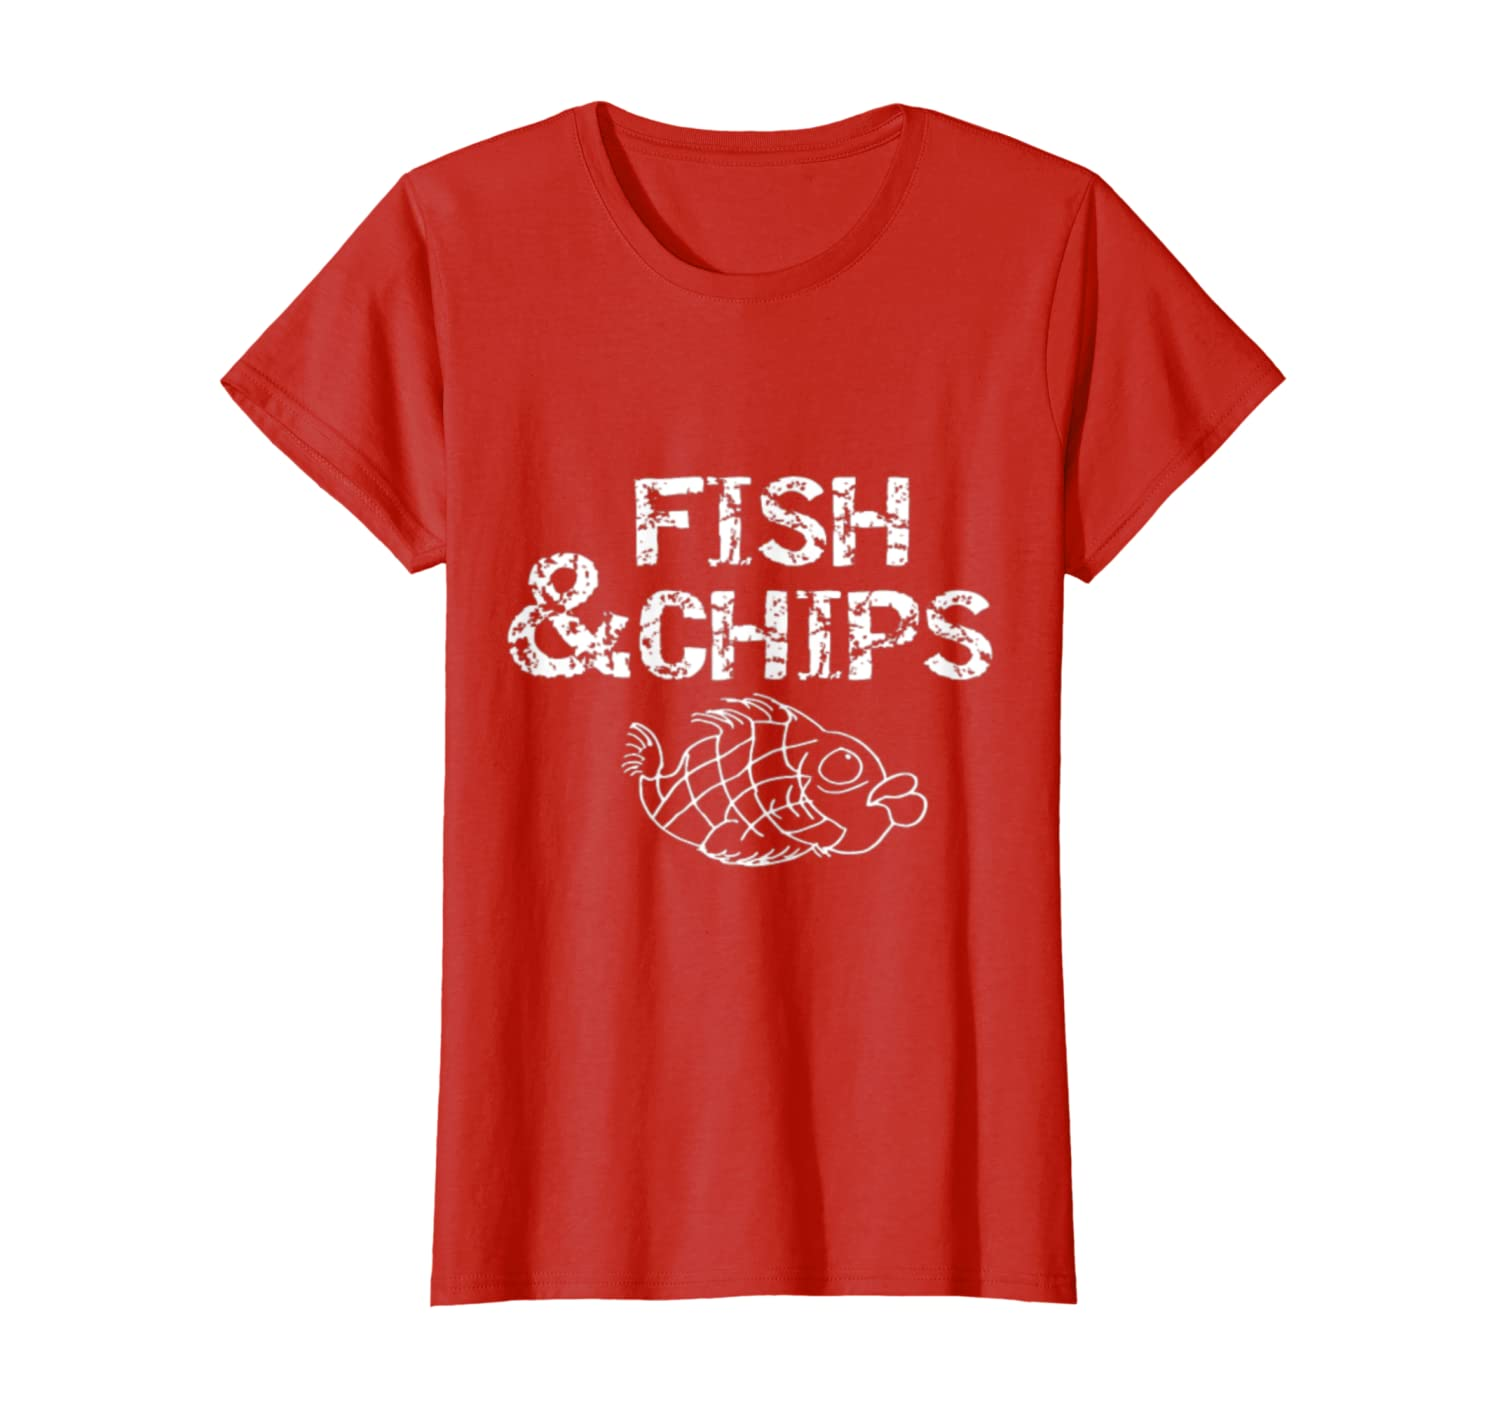 Foodie Fish and Chips Fish Fry Up Copy Gifts T-Shirt